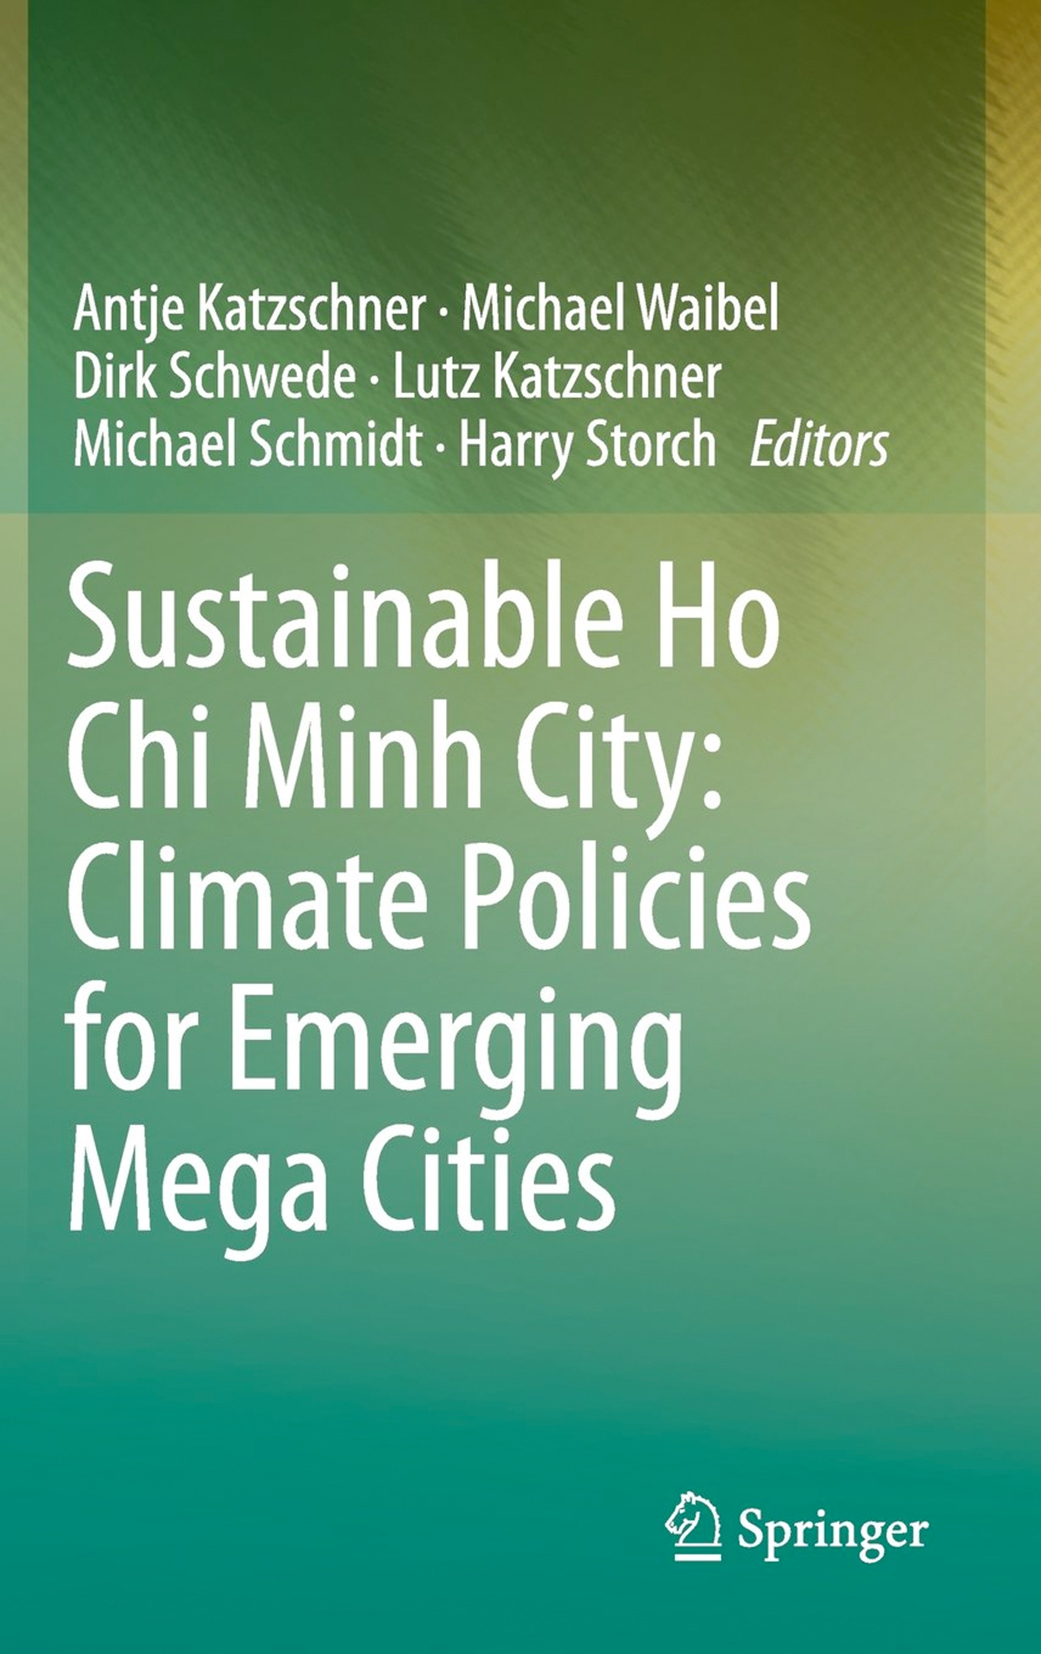 2015_Springer_Cover_MegaCity